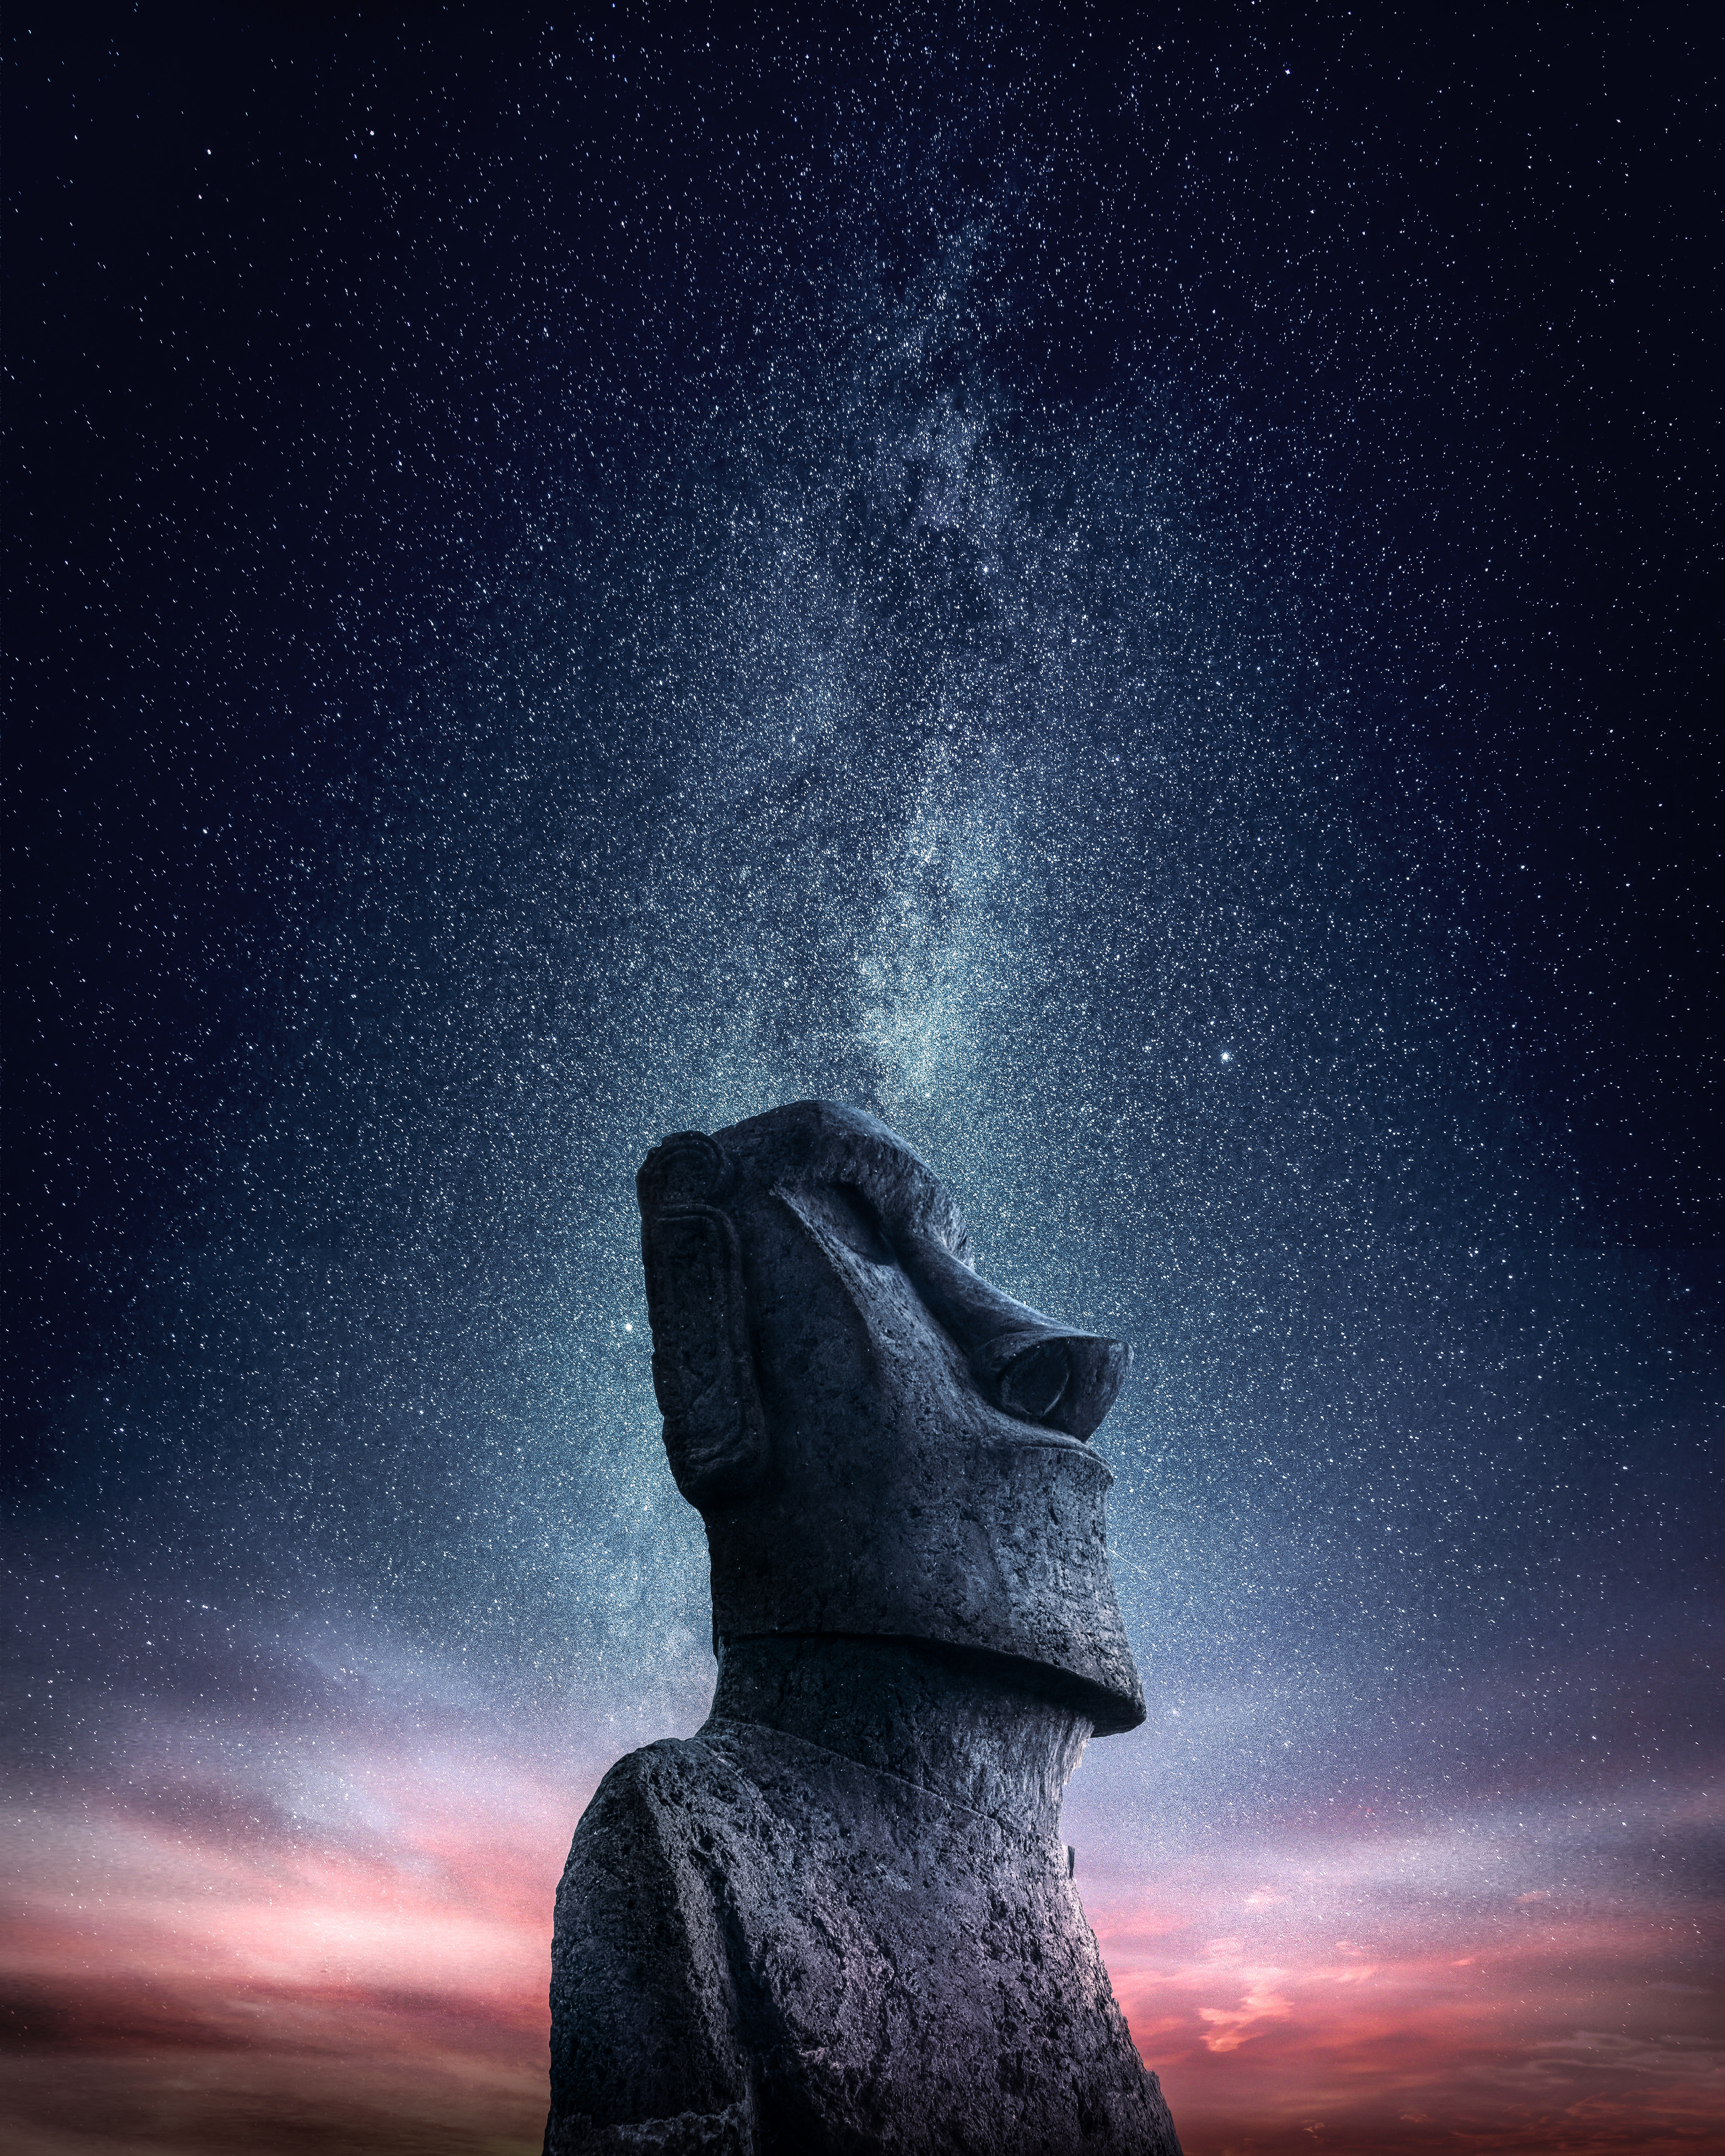 127846 download wallpaper Miscellaneous, Miscellanea, Starry Sky, Statue, Moai, Idol, Easter Straits, Easter Strow screensavers and pictures for free